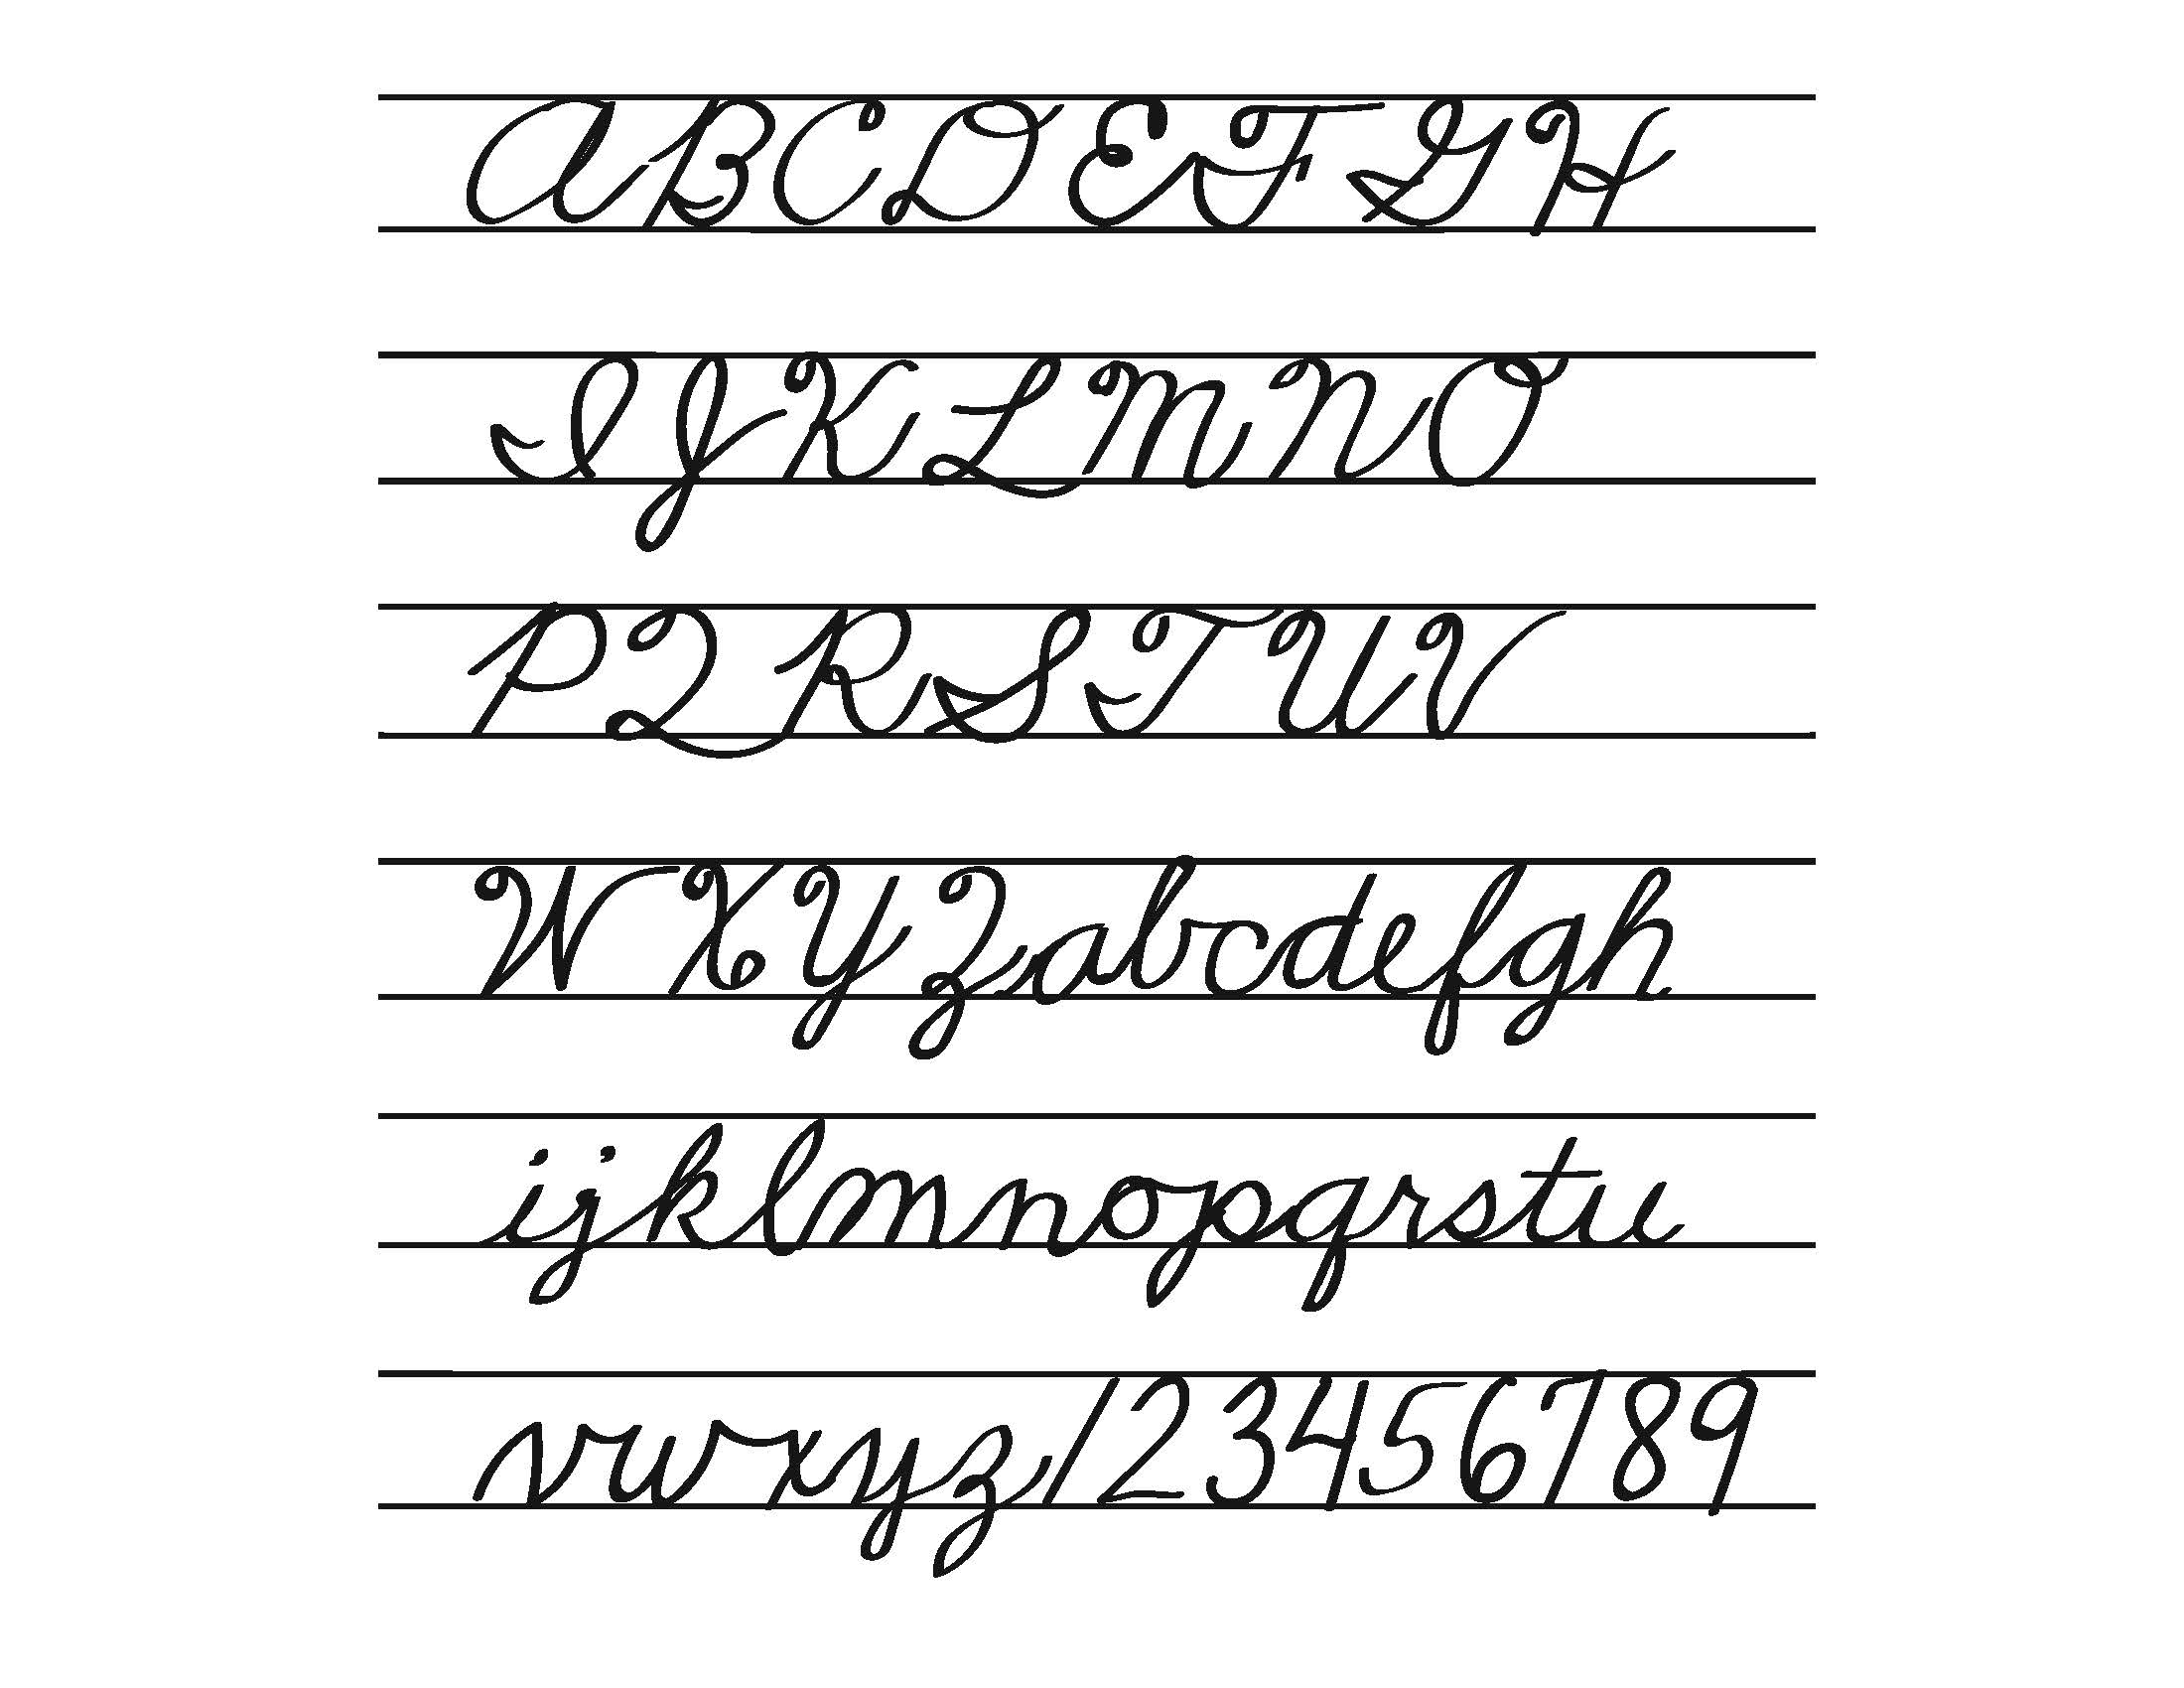 The Art Of The Handwritten Letterform